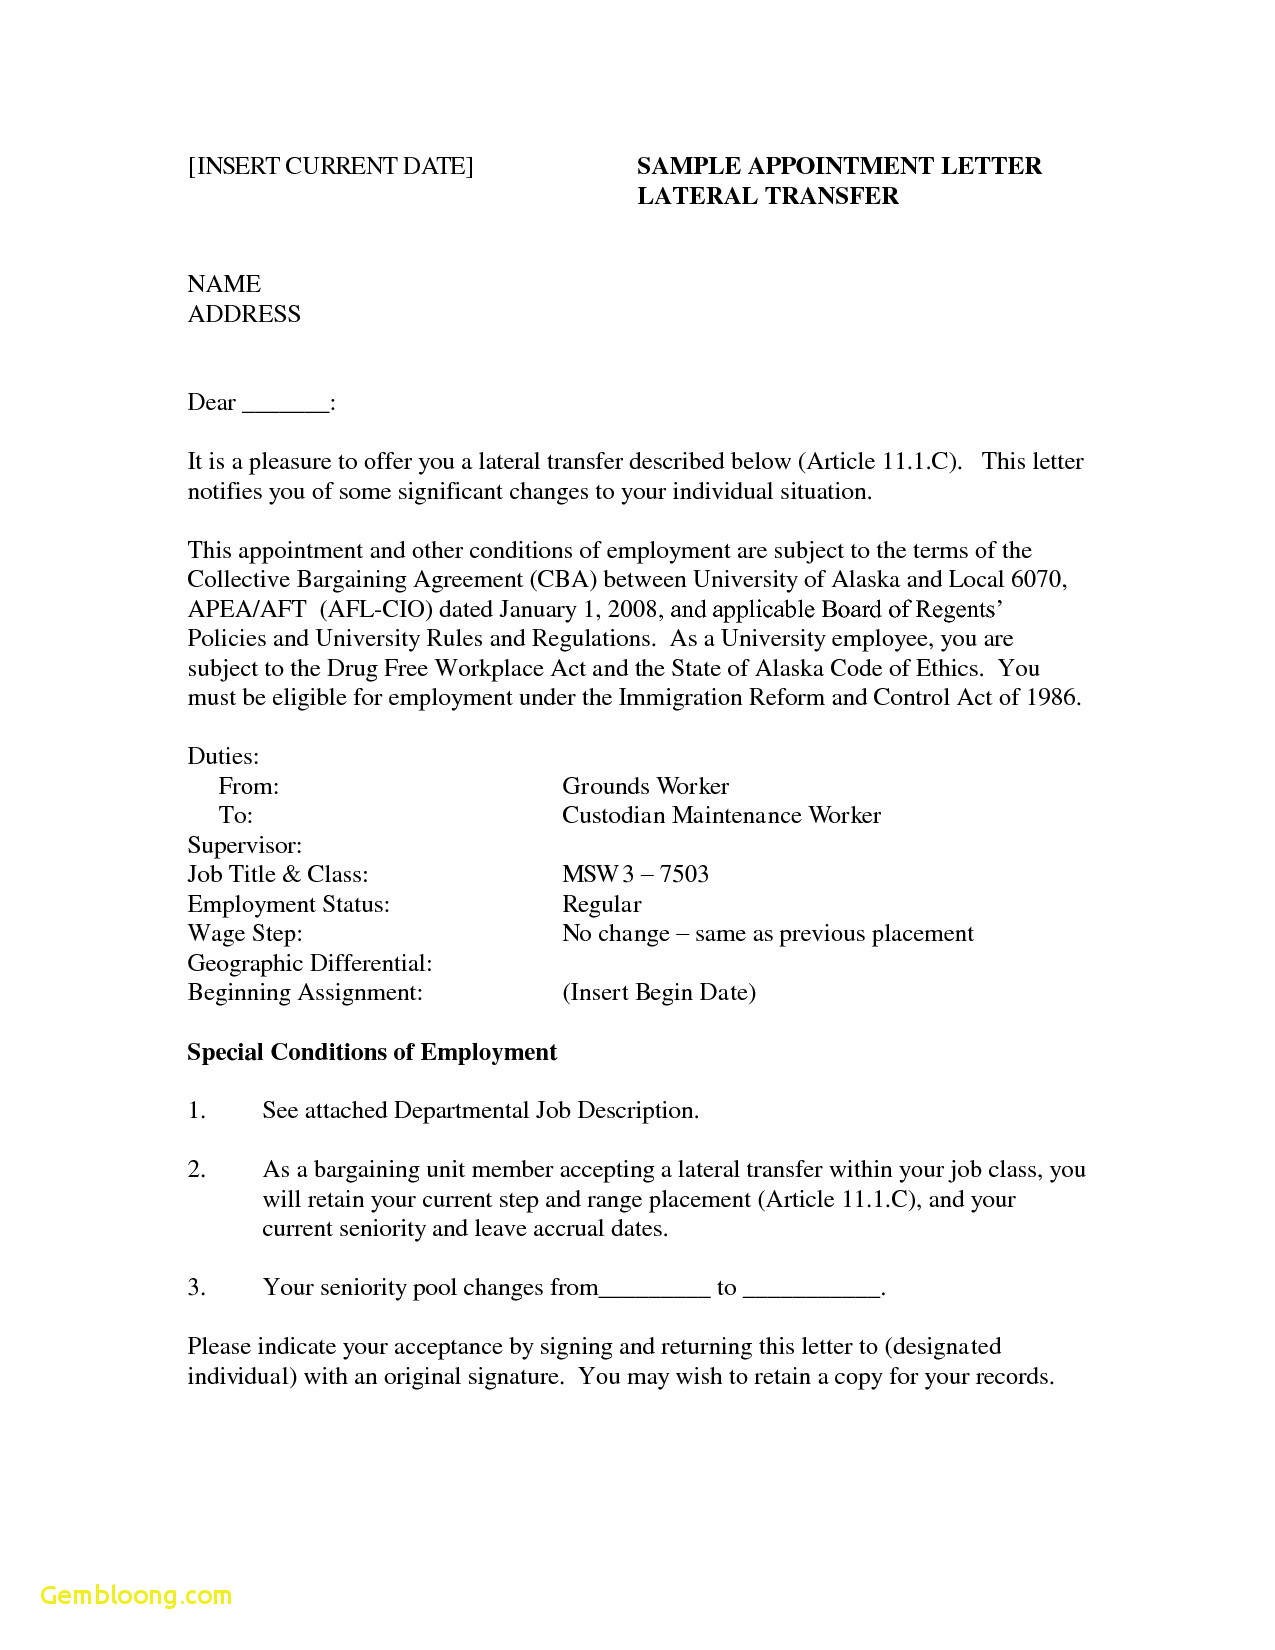 employment cover letter template word example-Word Resume Samples Download Cover Letter Template Word 2014 Fresh Relocation Cover Letters Od 14-h